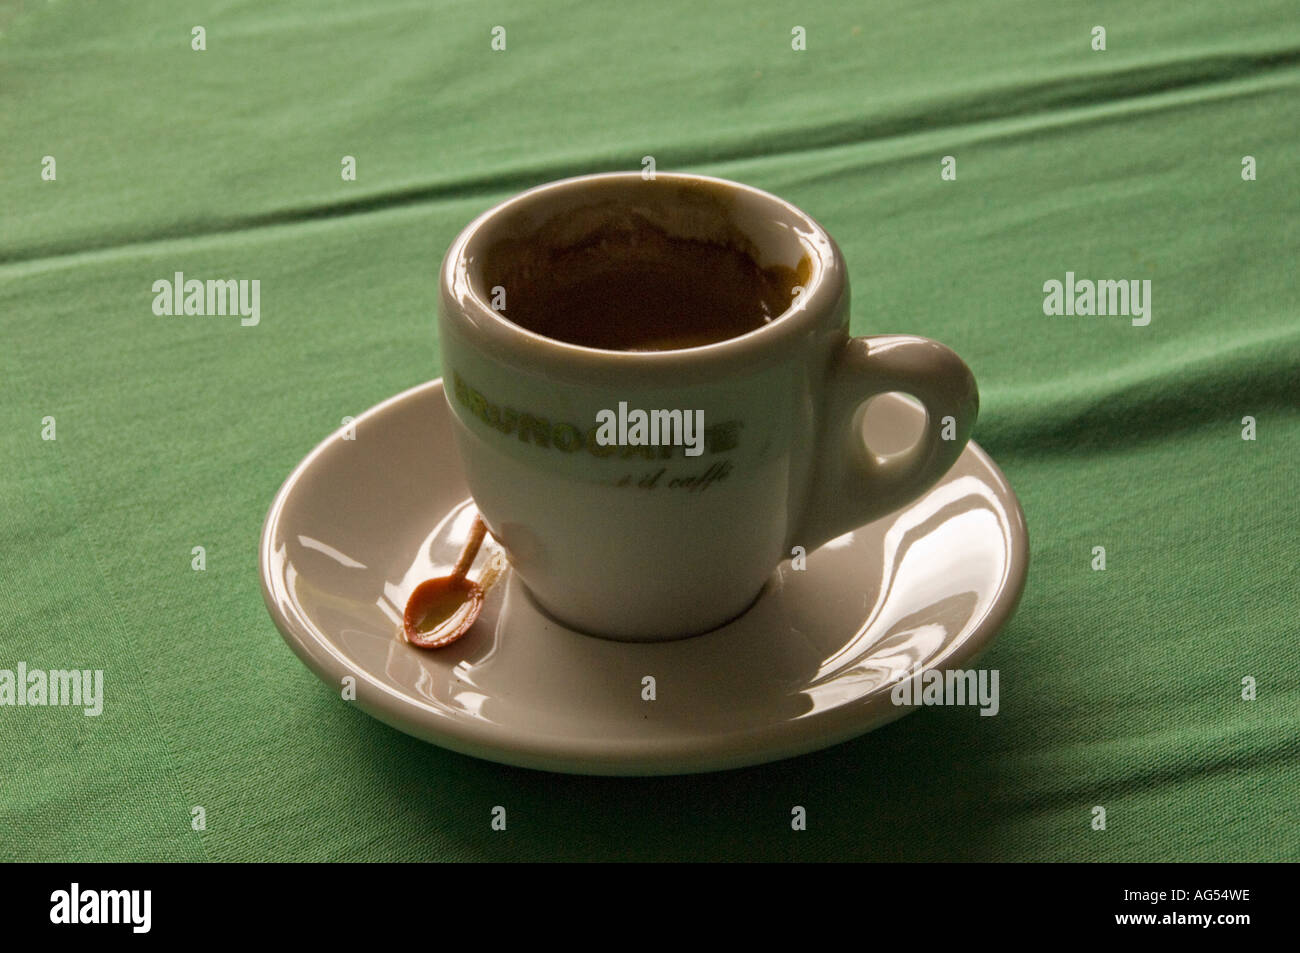 Expresso Café Expresso Cafe In Central Europe Serbia Stock Photo 8055965 Alamy